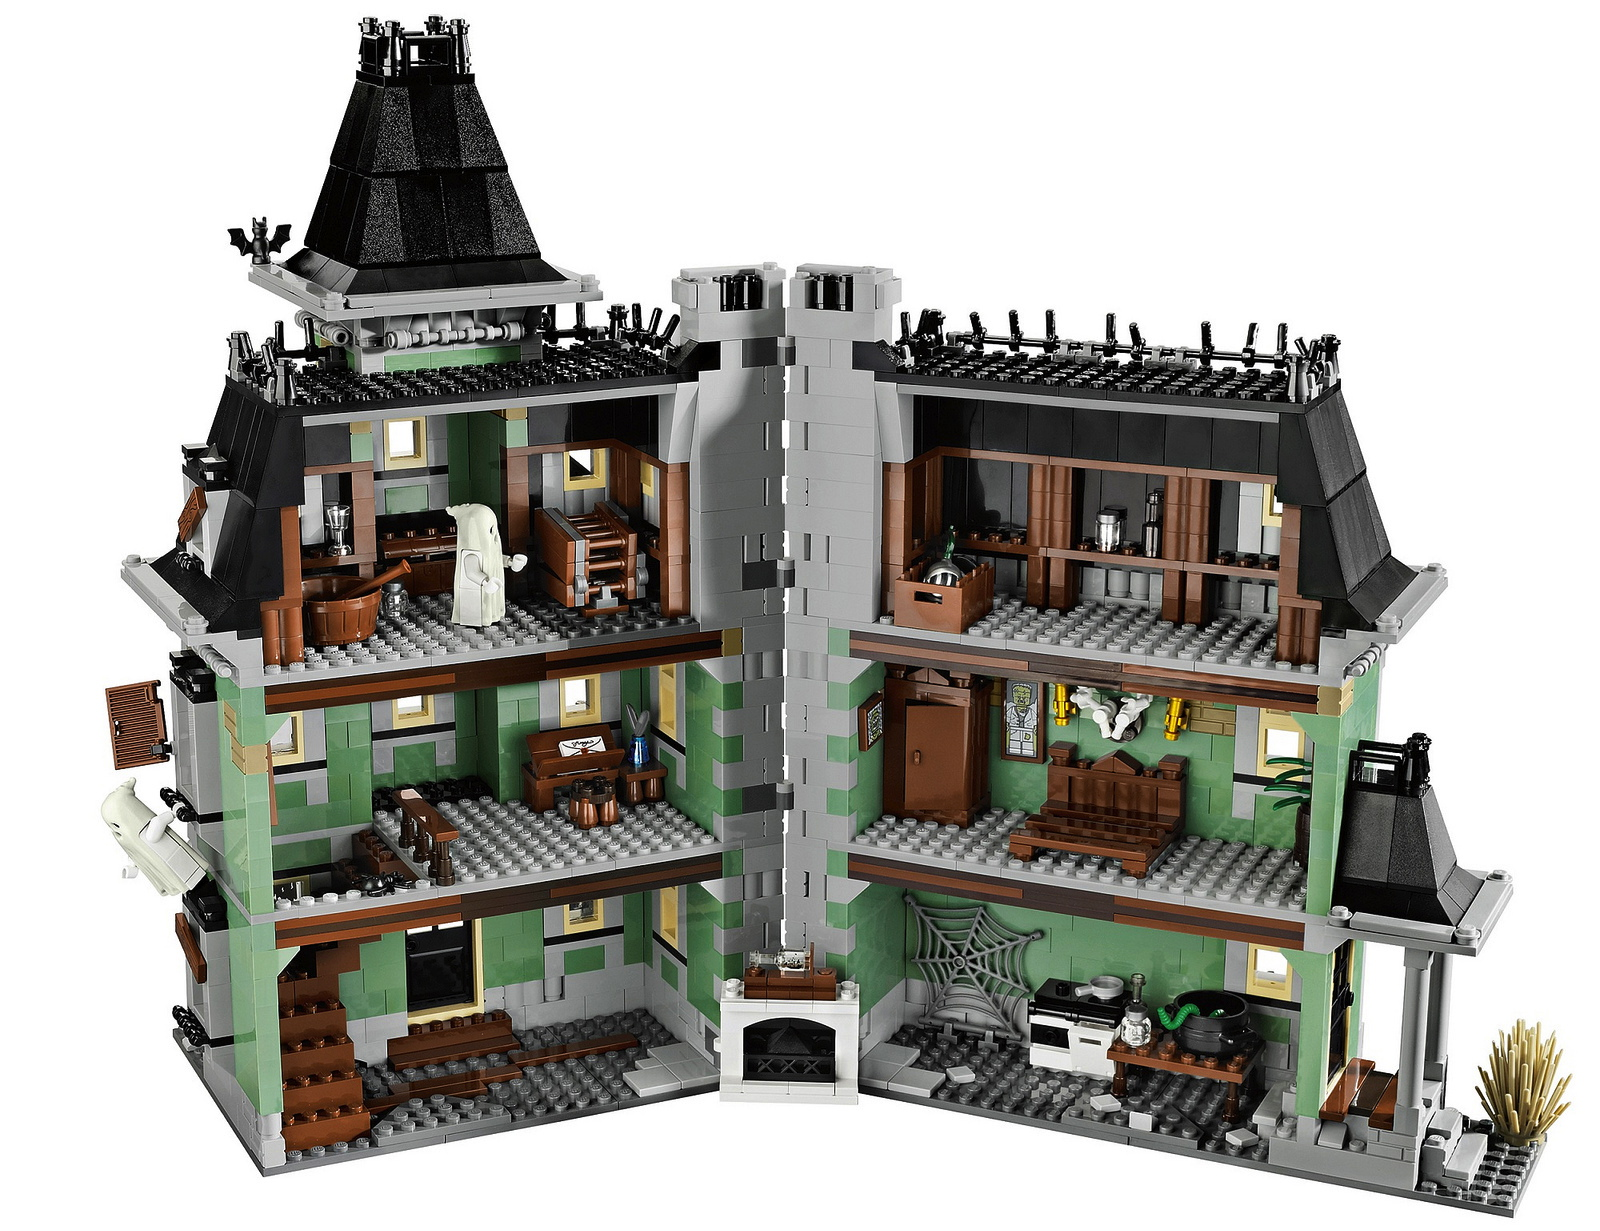 LEGO Announces Amazingly Detailed Haunted House Building